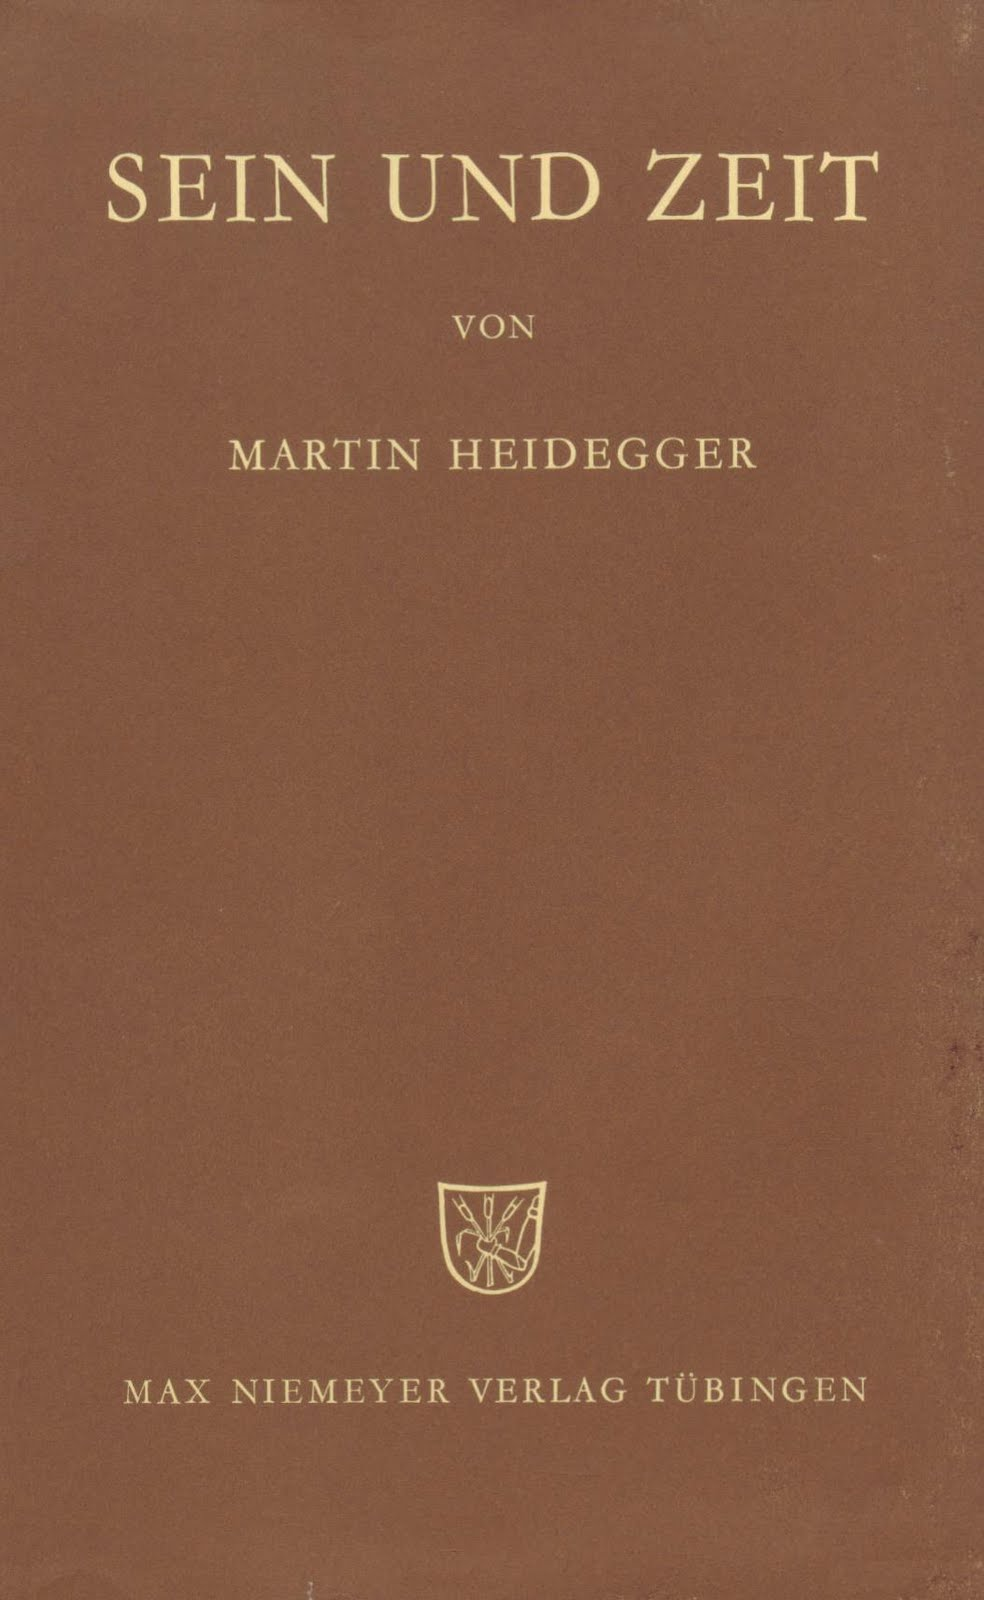 an essay on martin heidegger and his connection to the nazis The case of martin heidegger, philosopher and nazi  martin heidegger (1889-1976)  heidegger and the nazis4 much of the material presented in this.